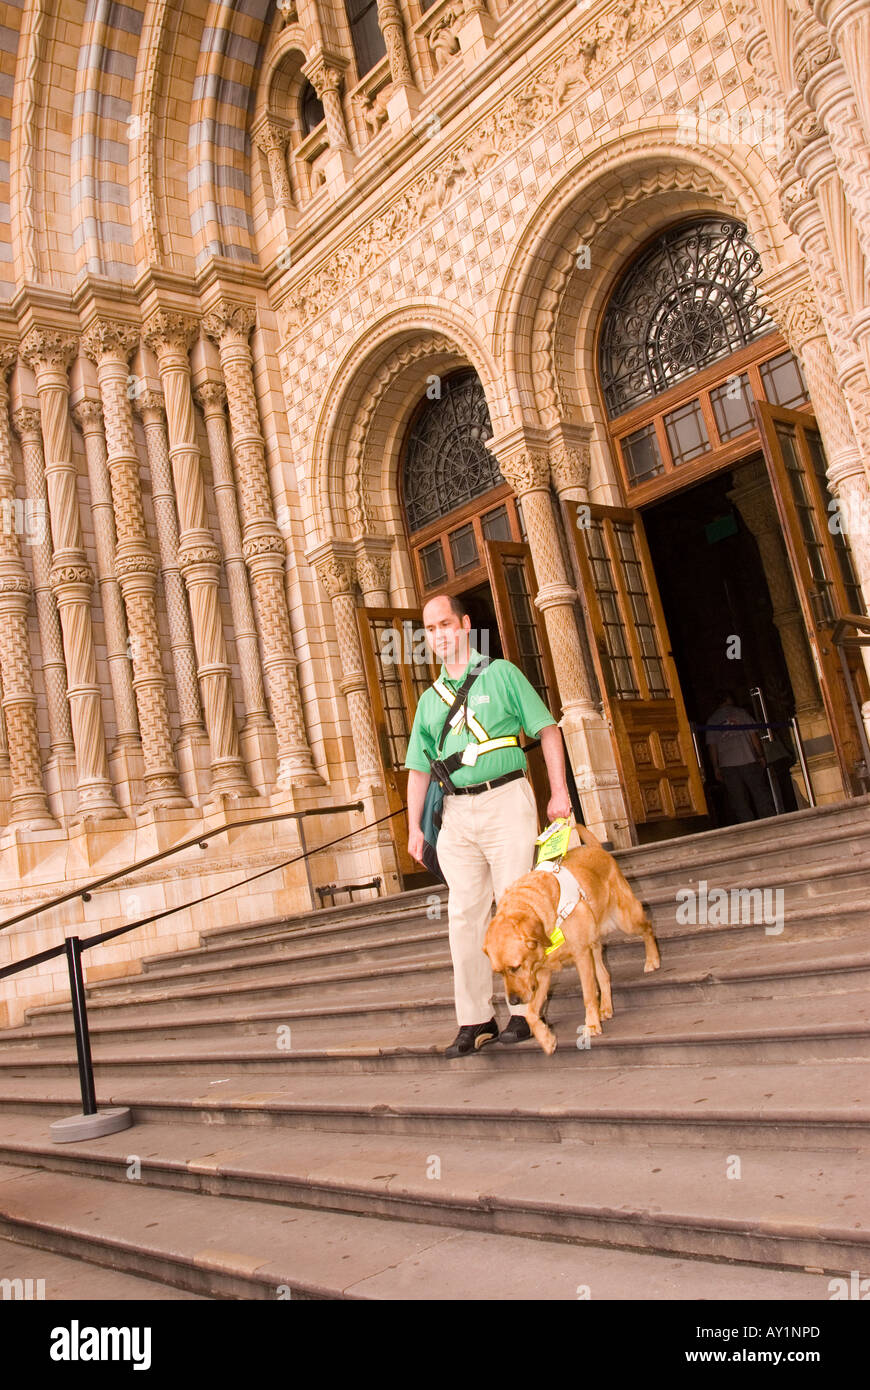 Blind runner and guide dog making history life with dogs.